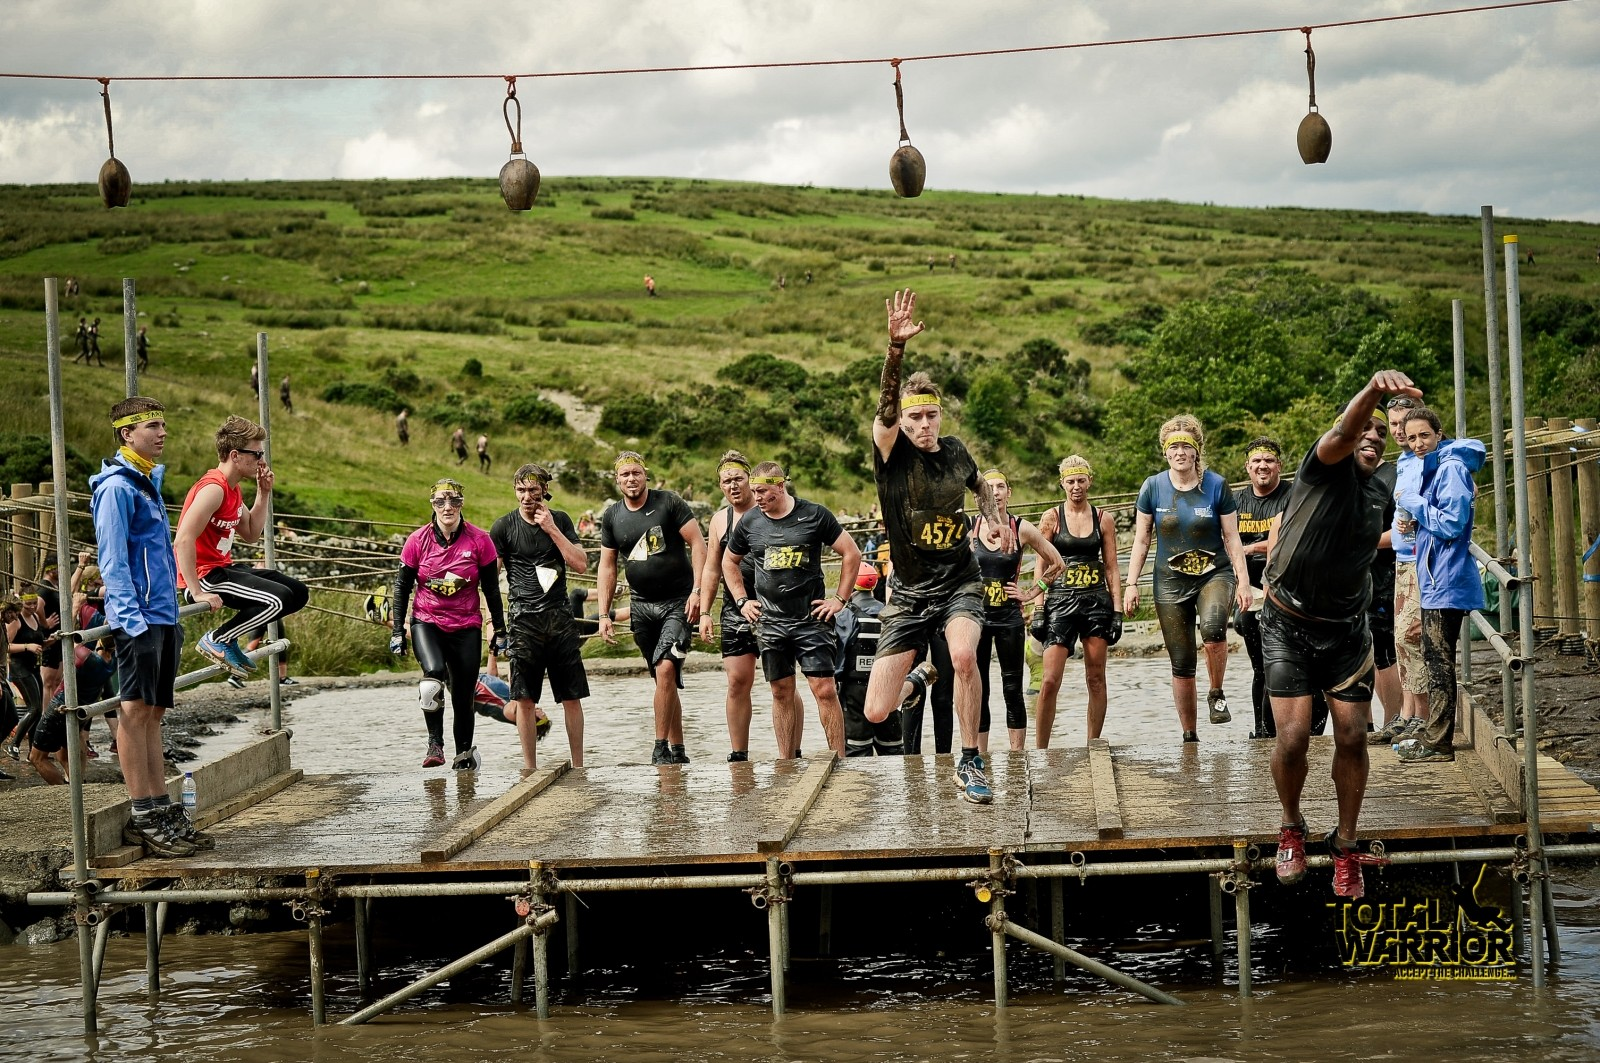 Kyle at Total Warrior